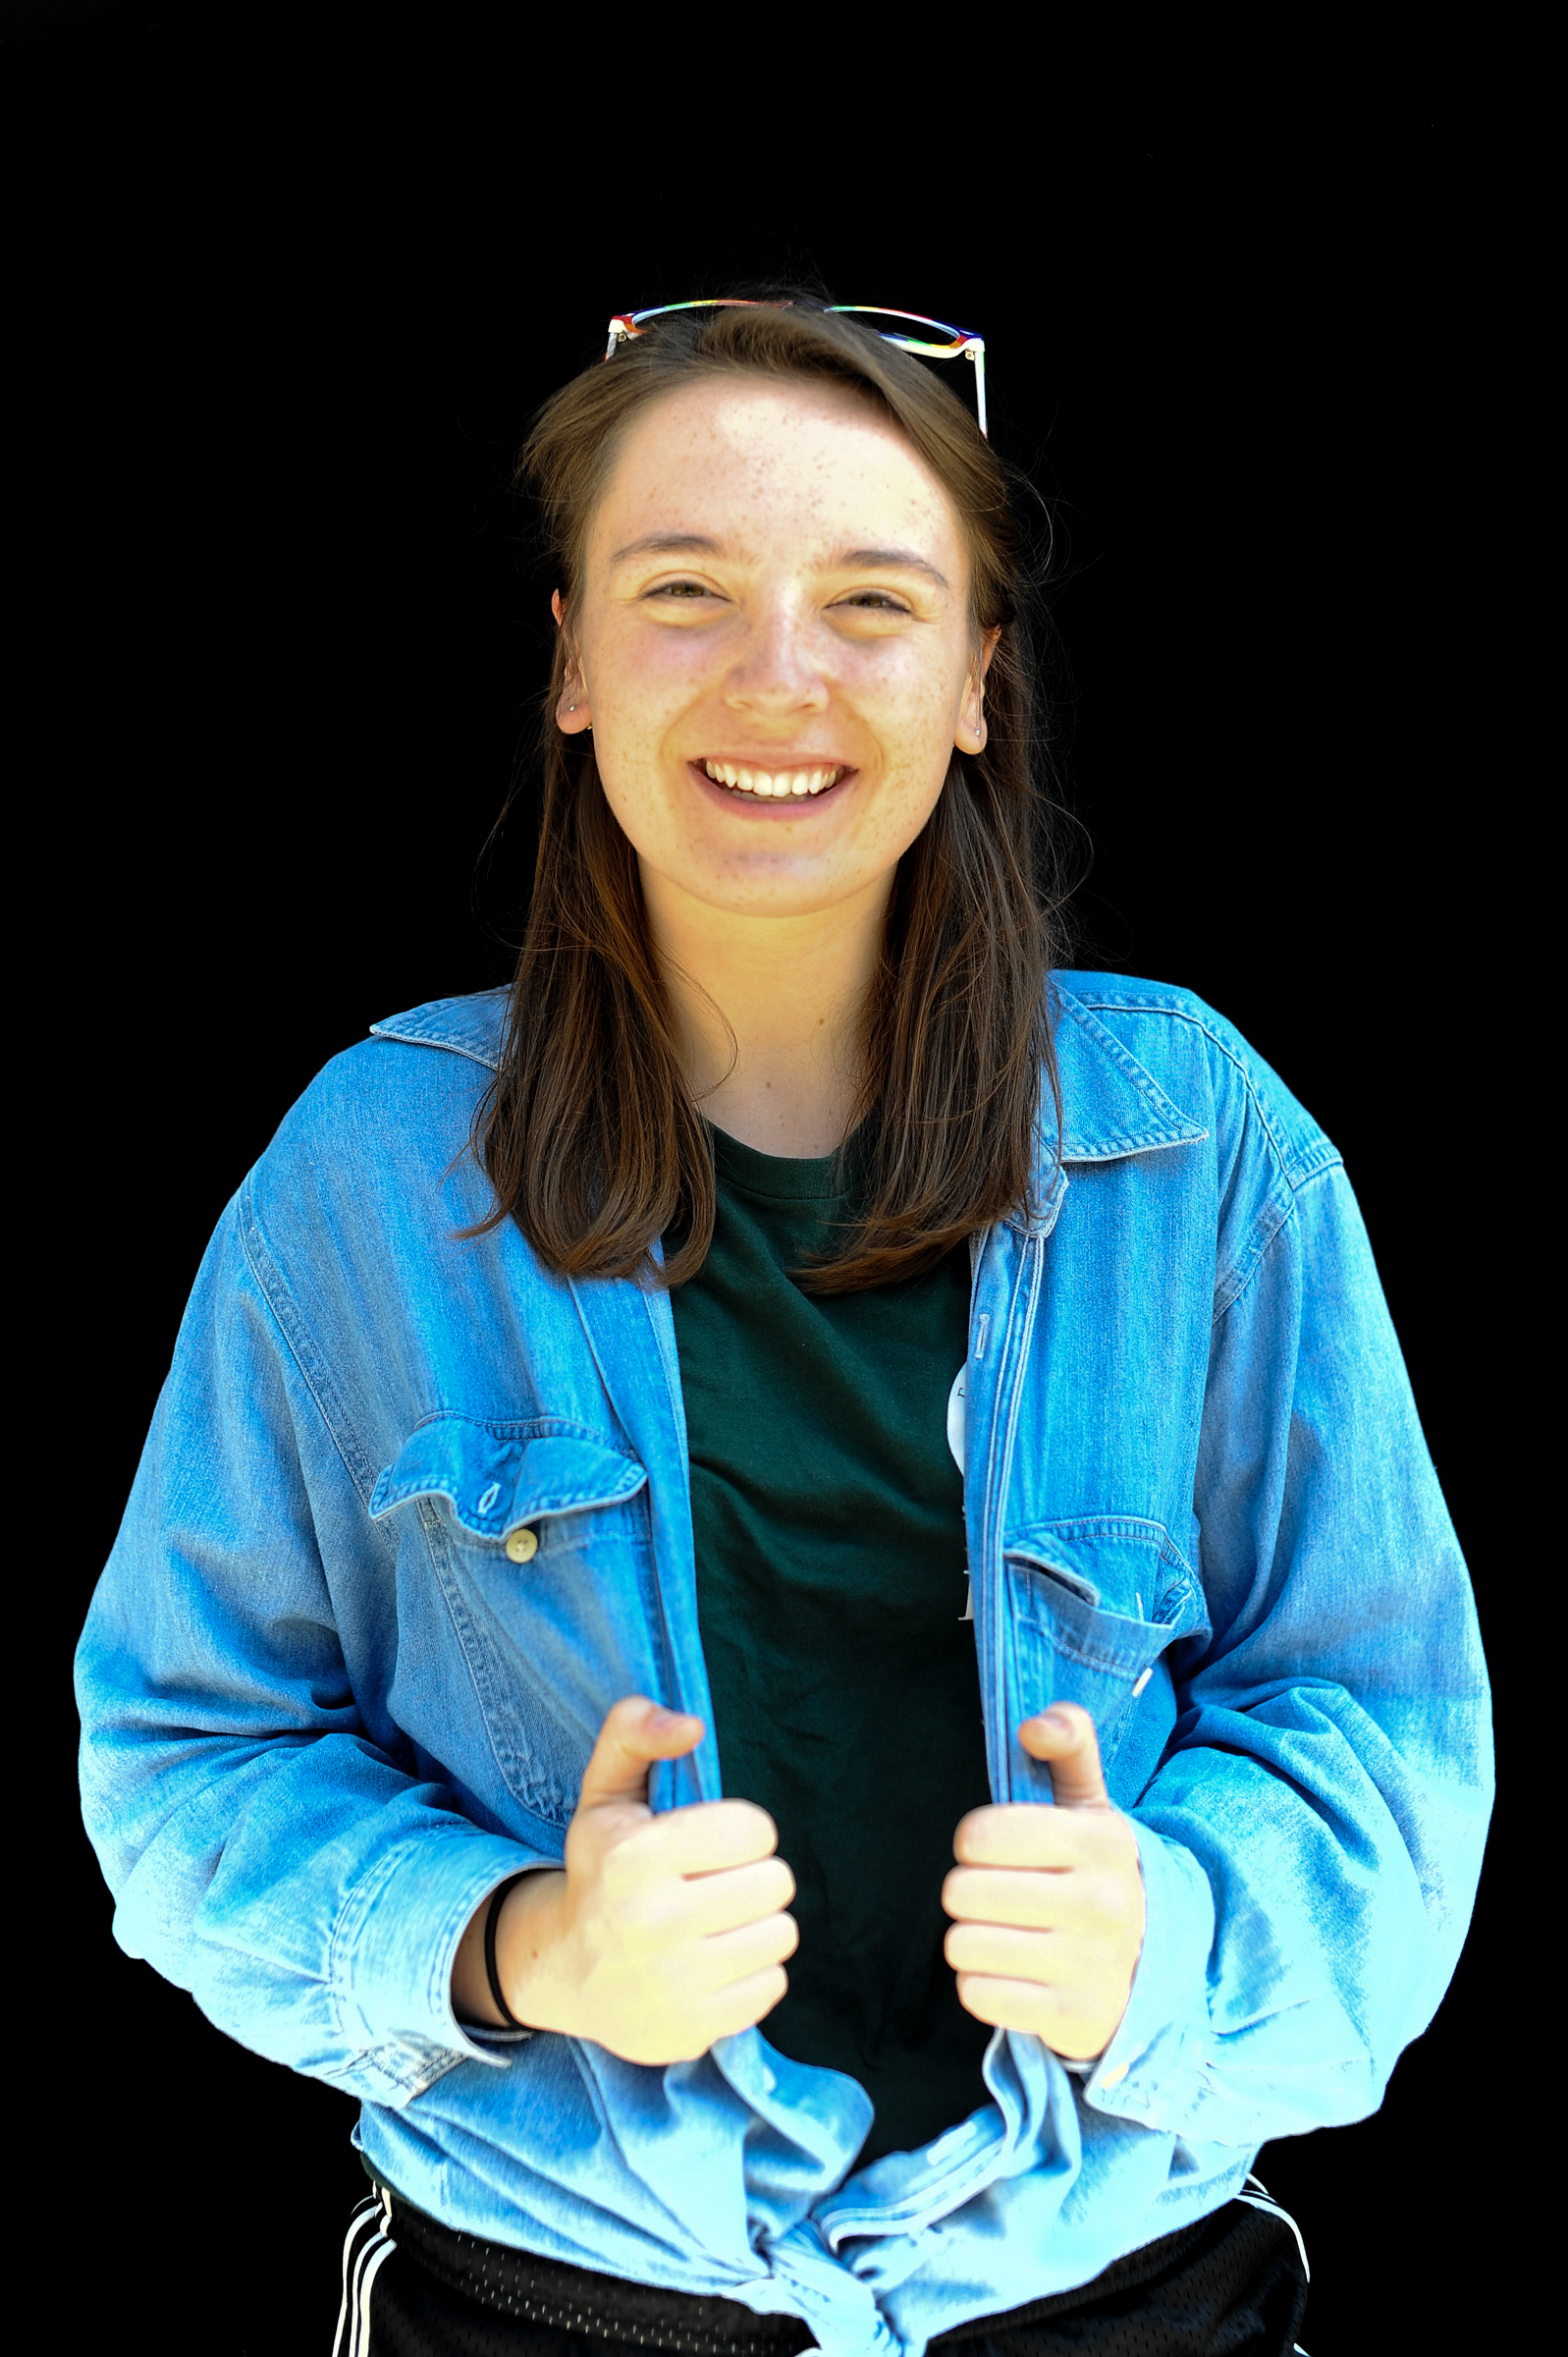 Name: Rosalie RossClass Year: 2019Major: Computer ScienceHometown: Ithaca, NYActivities: JUSA, Cornell Podcast Club, Cornell Figure Skating Club, Spark Design TeamIf you could make up a major, what would it be?: Pun writingWhy would you be on the front page of The Cornell Daily Sun?: In response to prelim season student adopts every pet at local animal shelterBlurb: Everyone underestimates the brightness of clouds